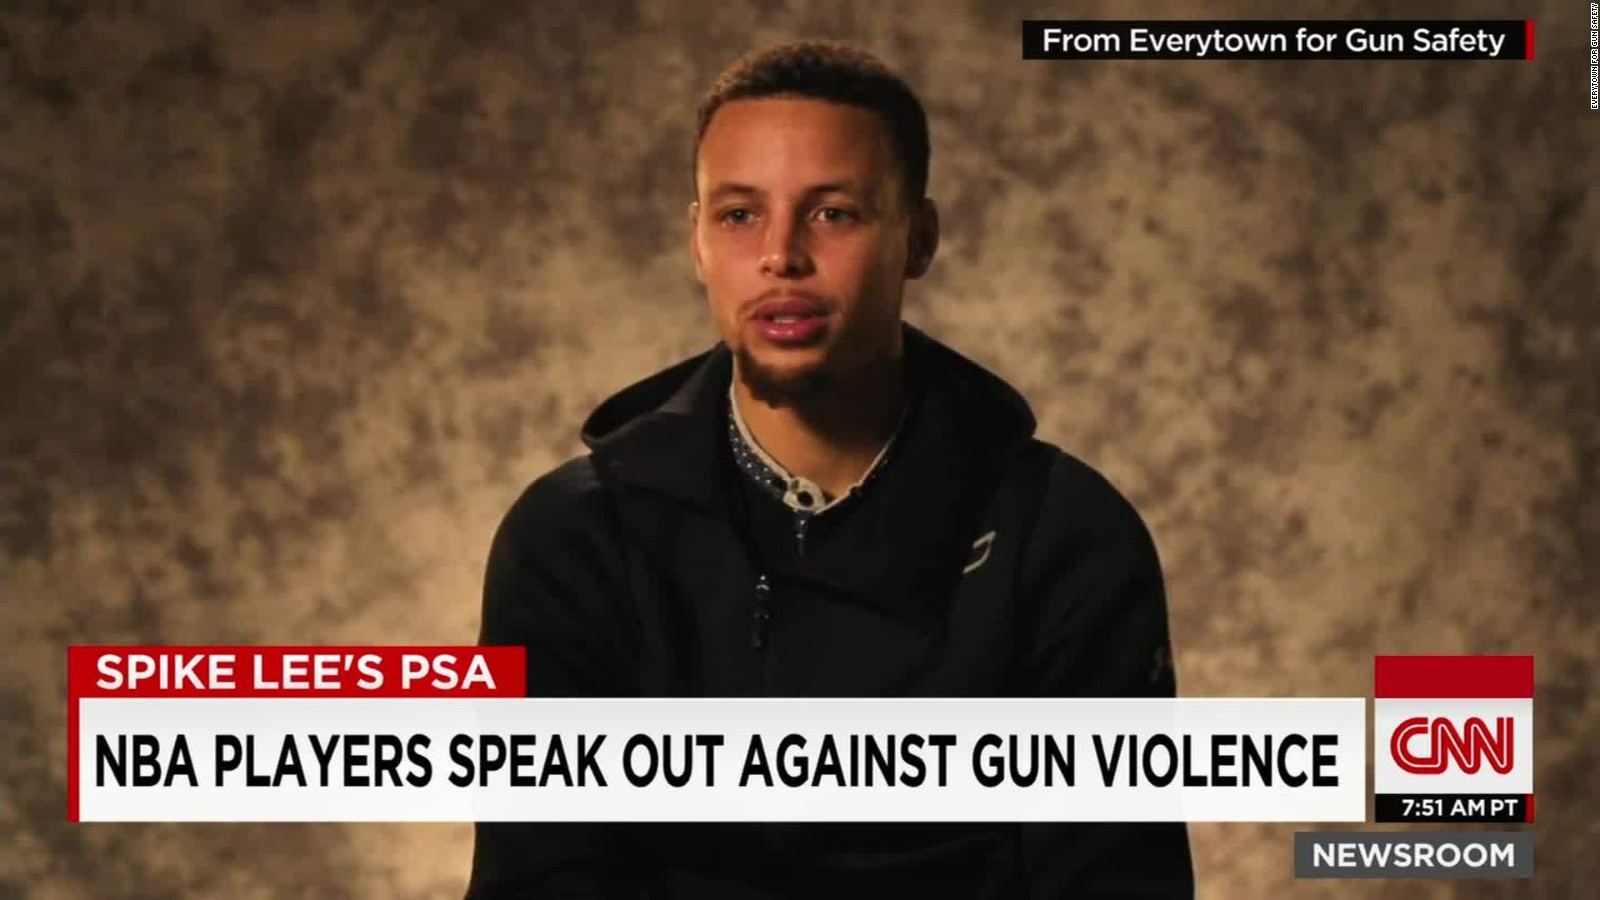 Nfl, join nba to fight gun violence (opinion)   cnn.com